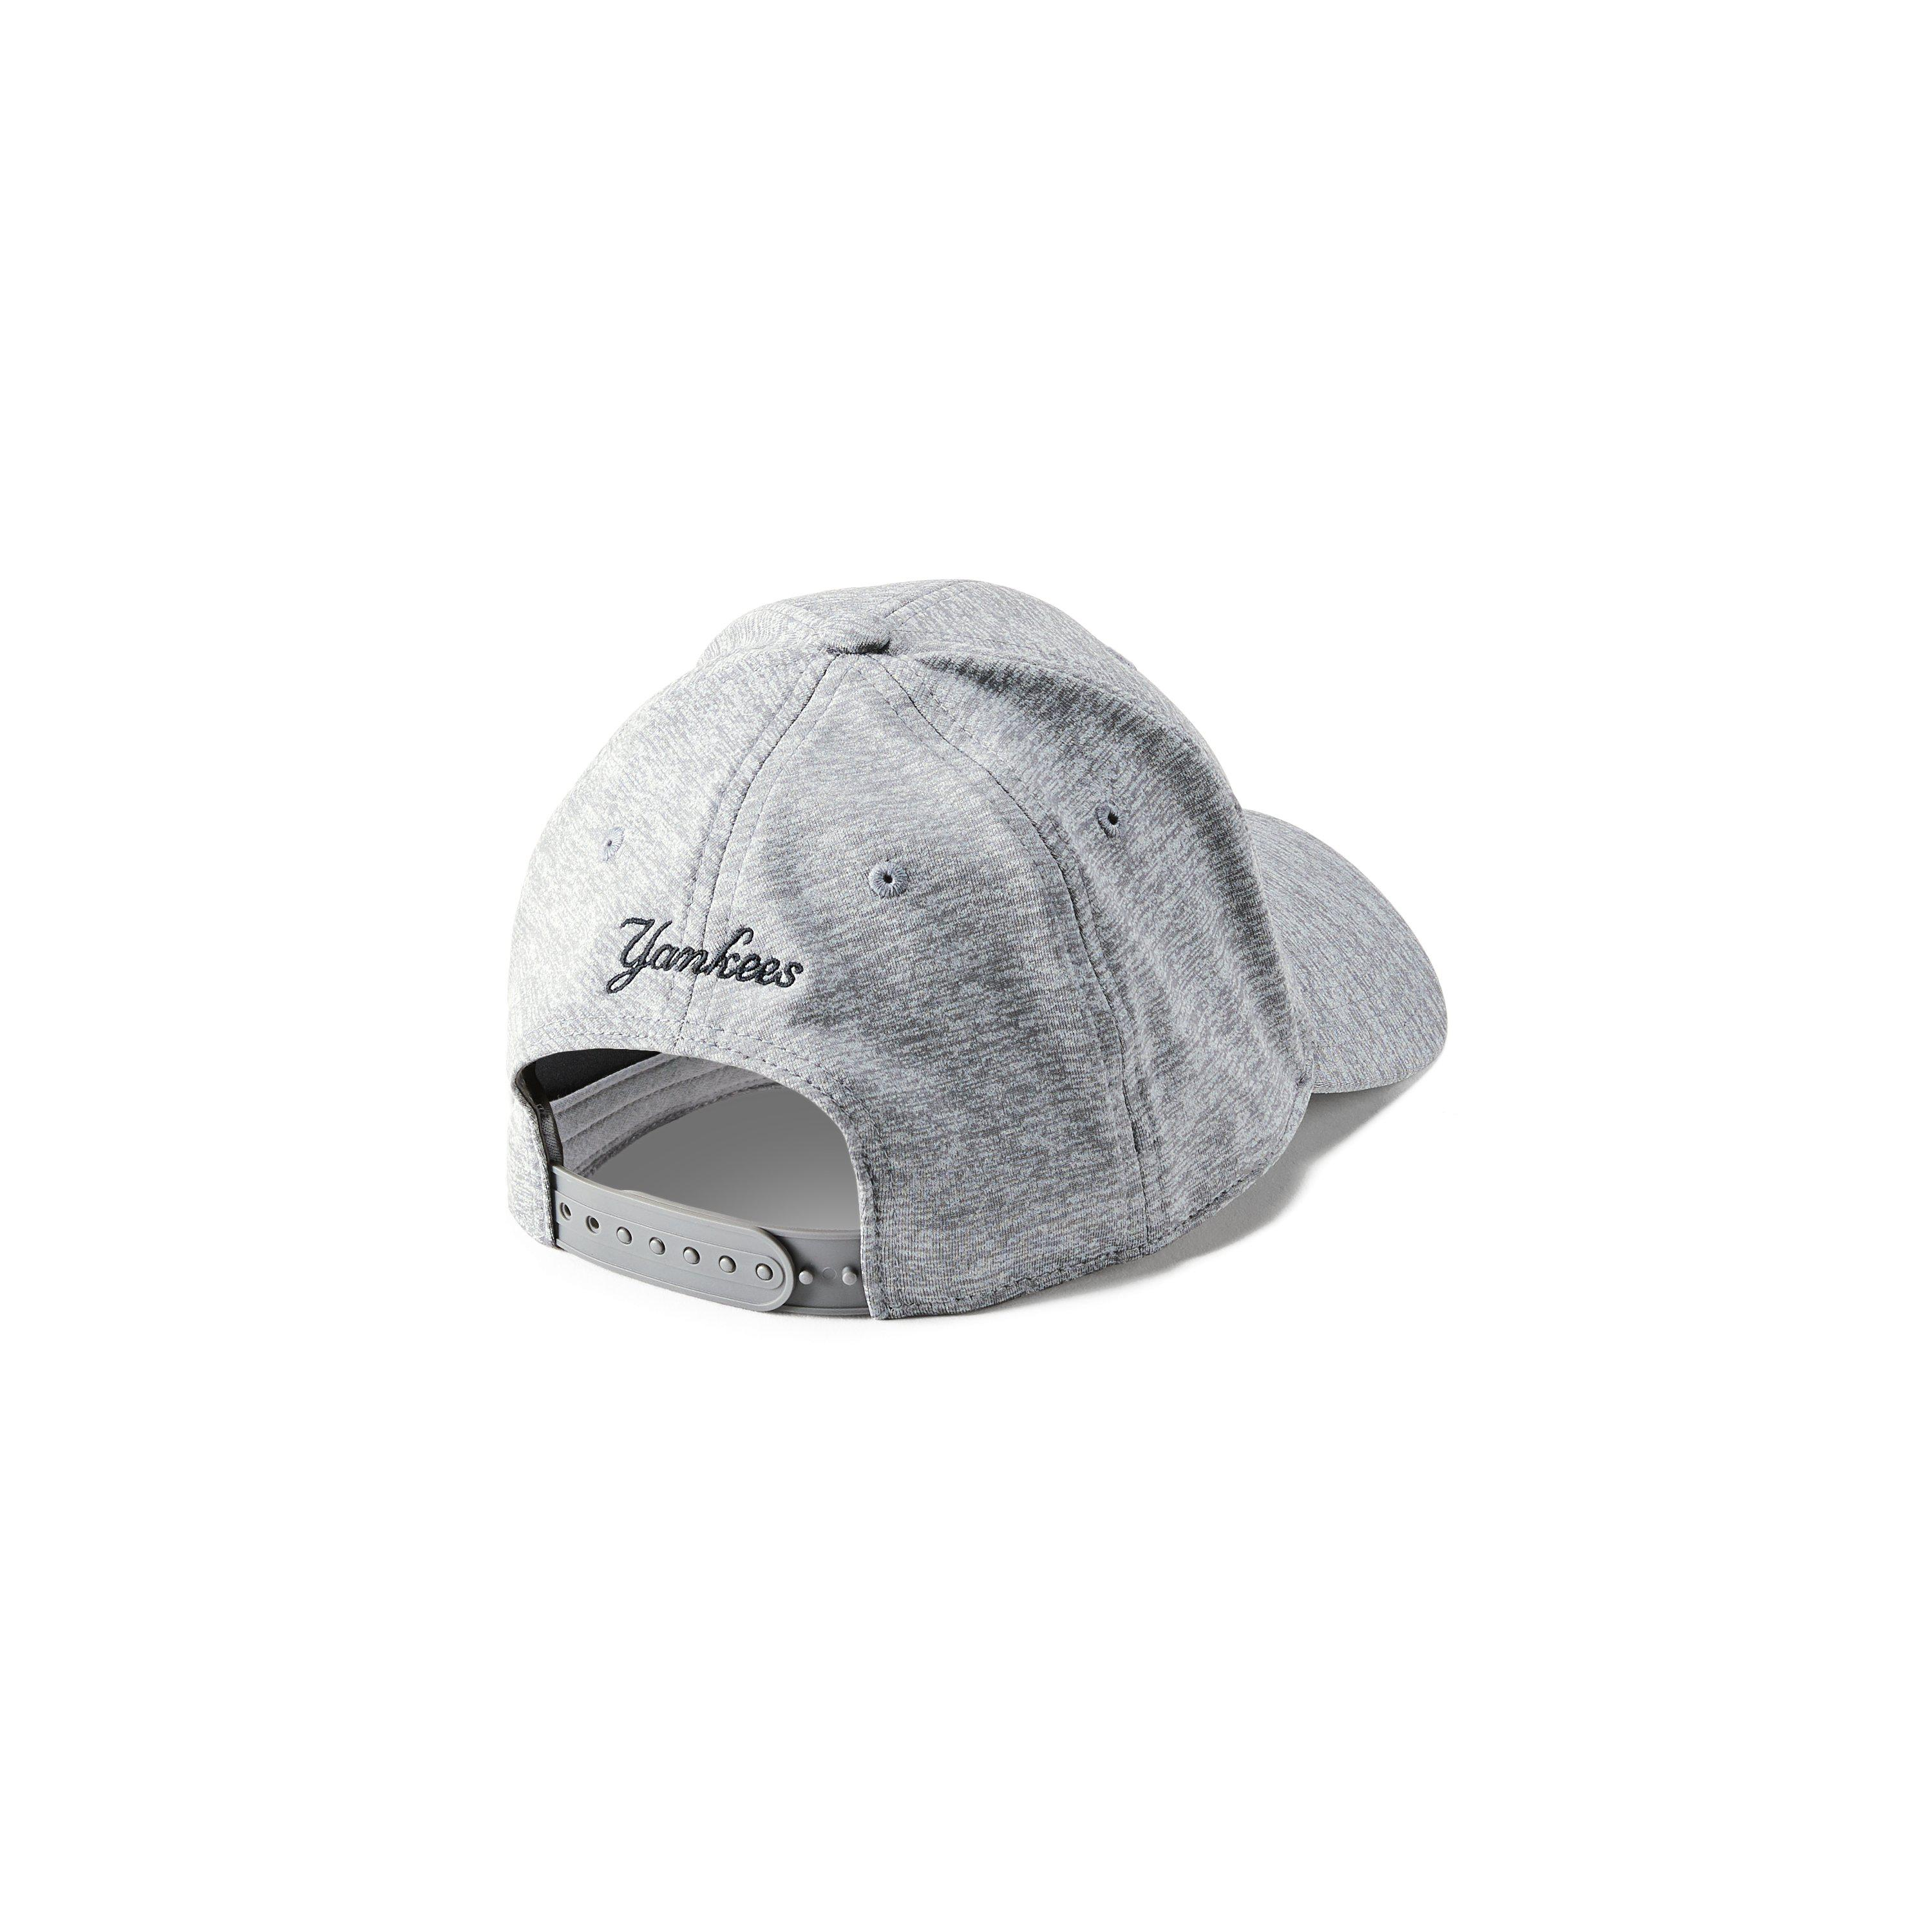 newest 0730b 89eaa Under Armour Men s Mlb Twist Closer Cap in Gray for Men - Lyst